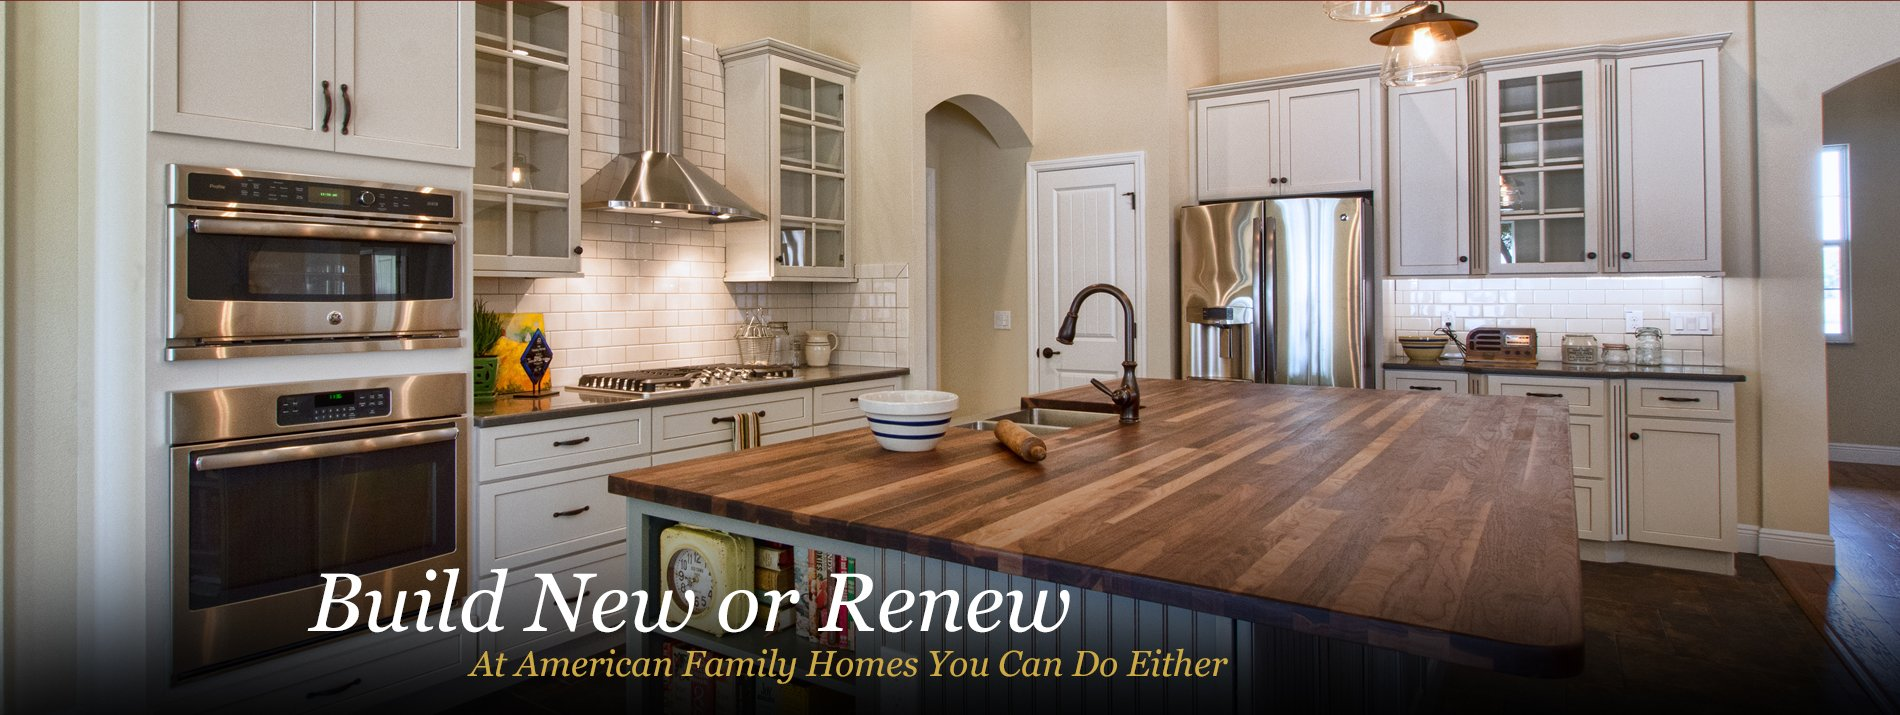 Central florida home builders american family homes for American family homes